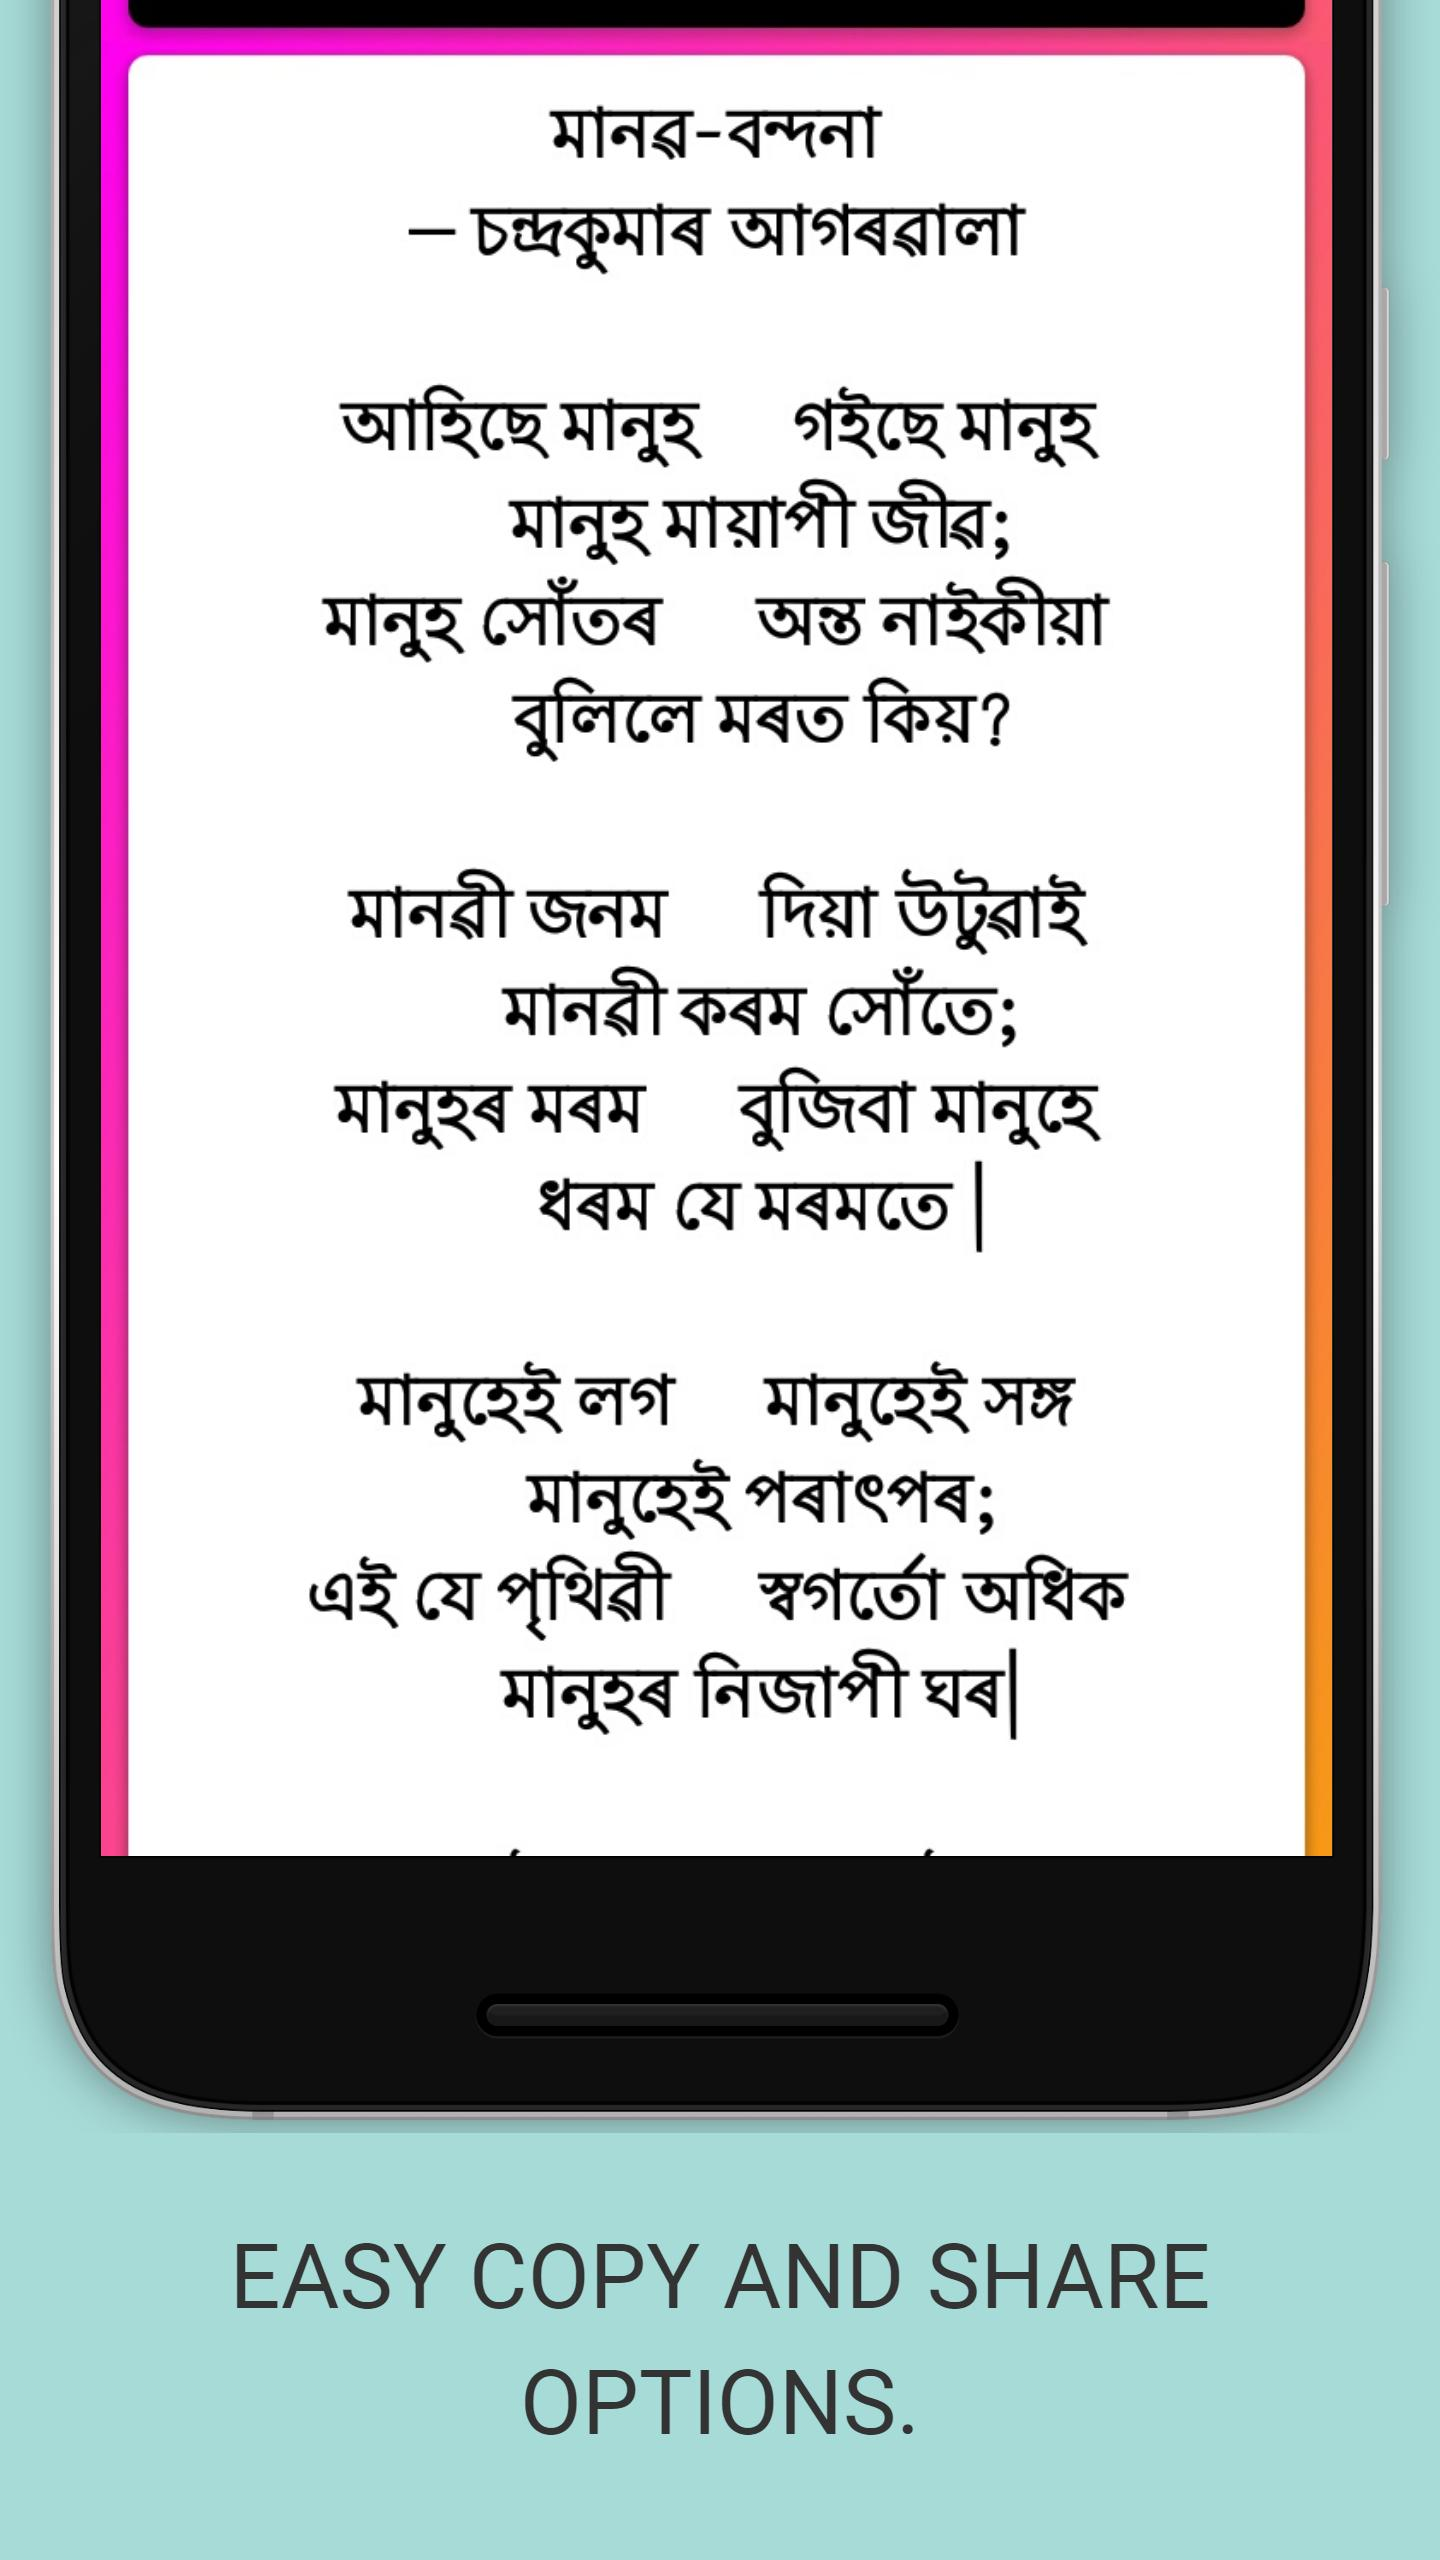 Assamese Poems and Daily Status for Android - APK Download